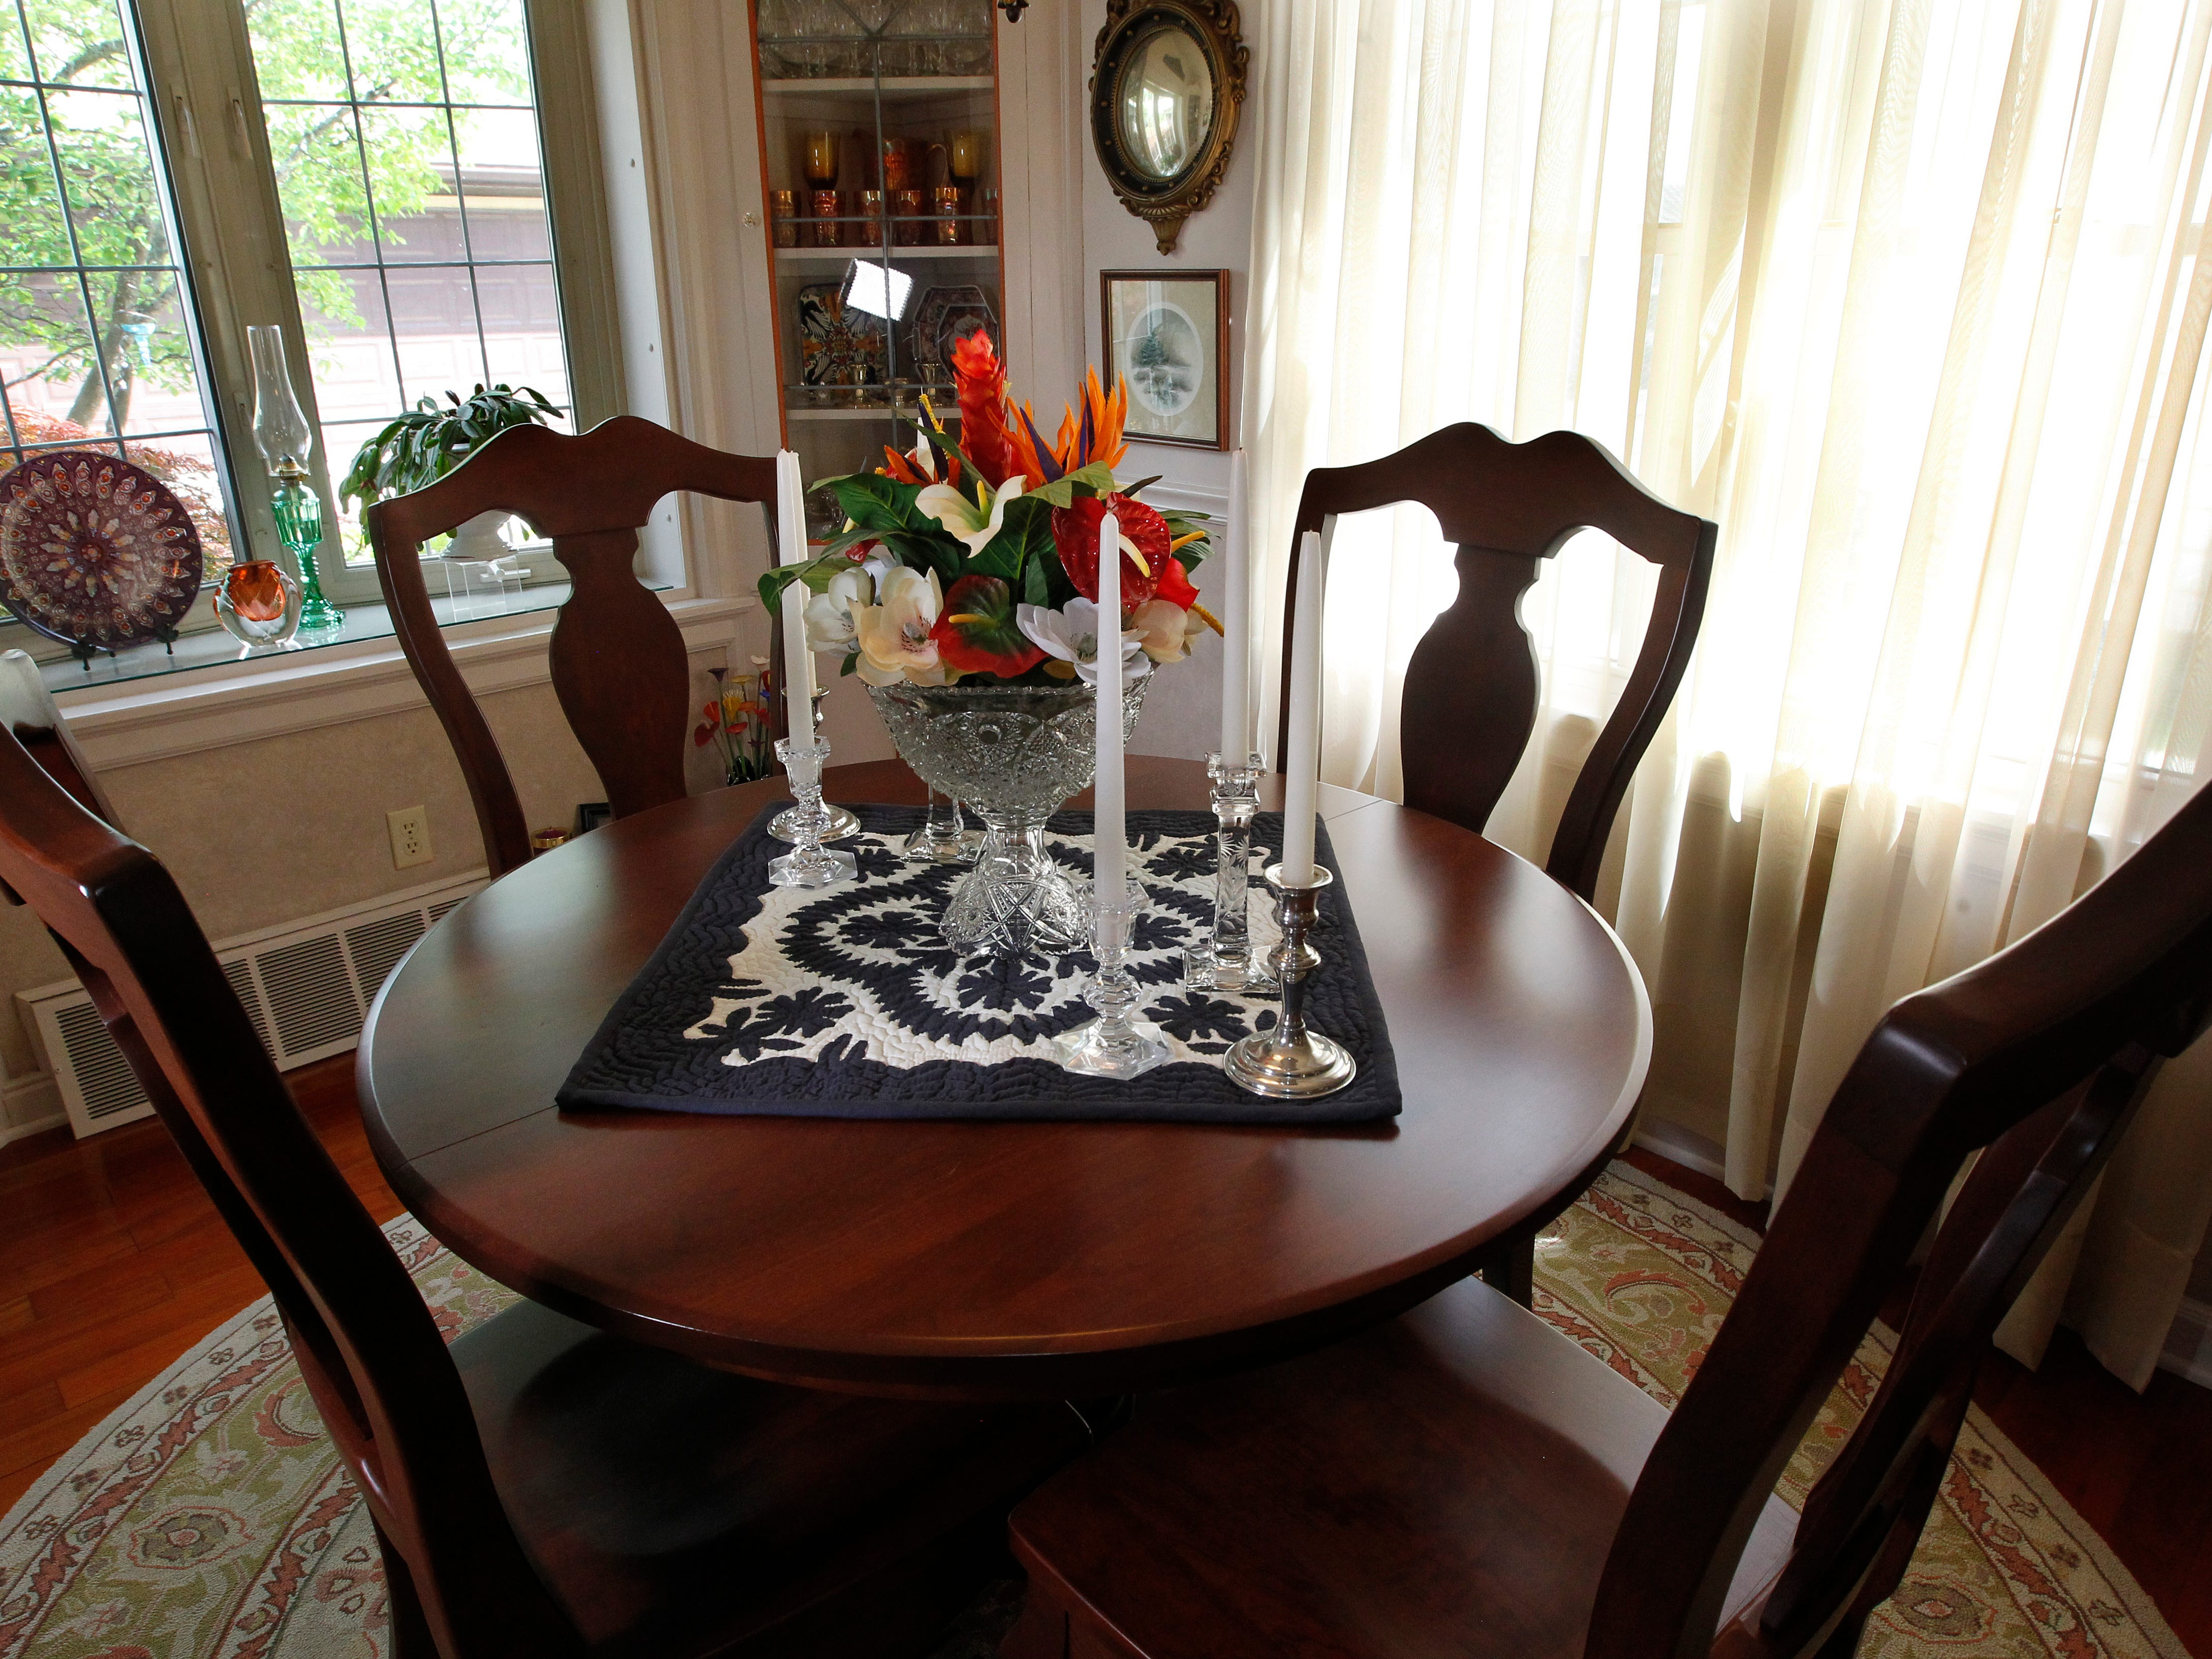 The dining room features this Amish table and chairs, built-in cabinets and multiple windows.